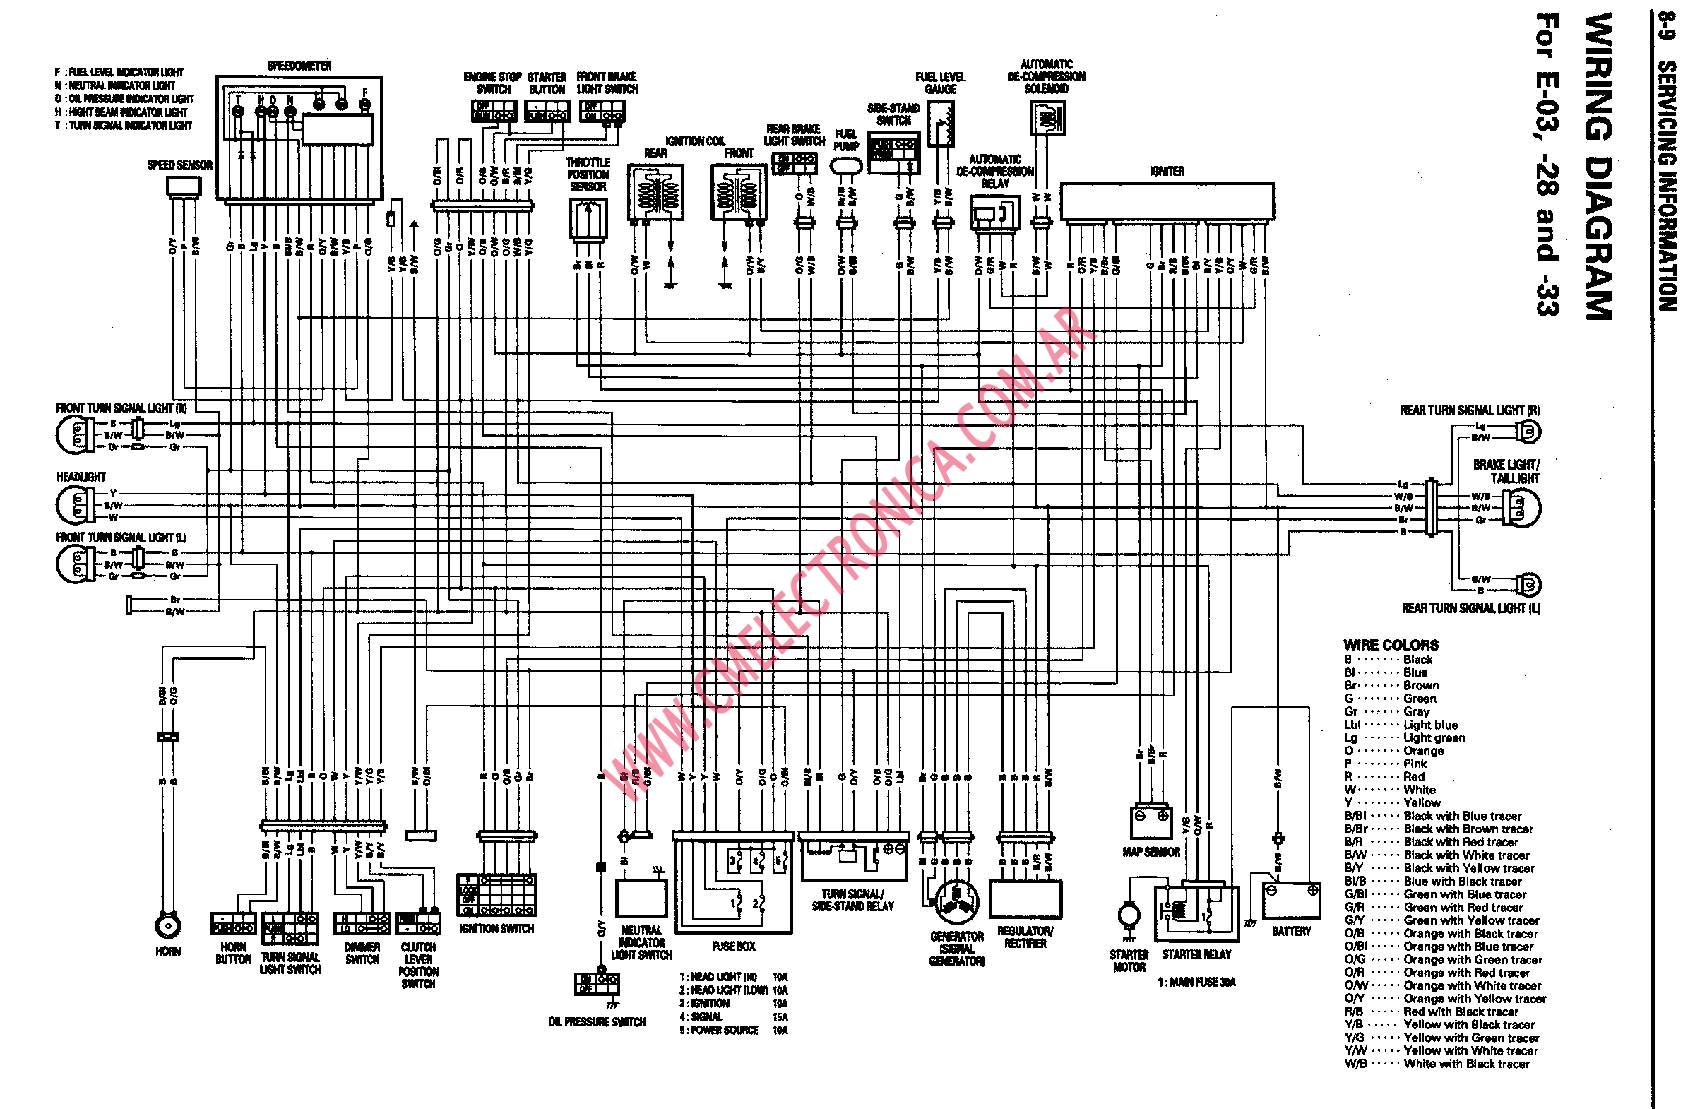 Vl Ignition Wiring Diagram : 26 Wiring Diagram Images